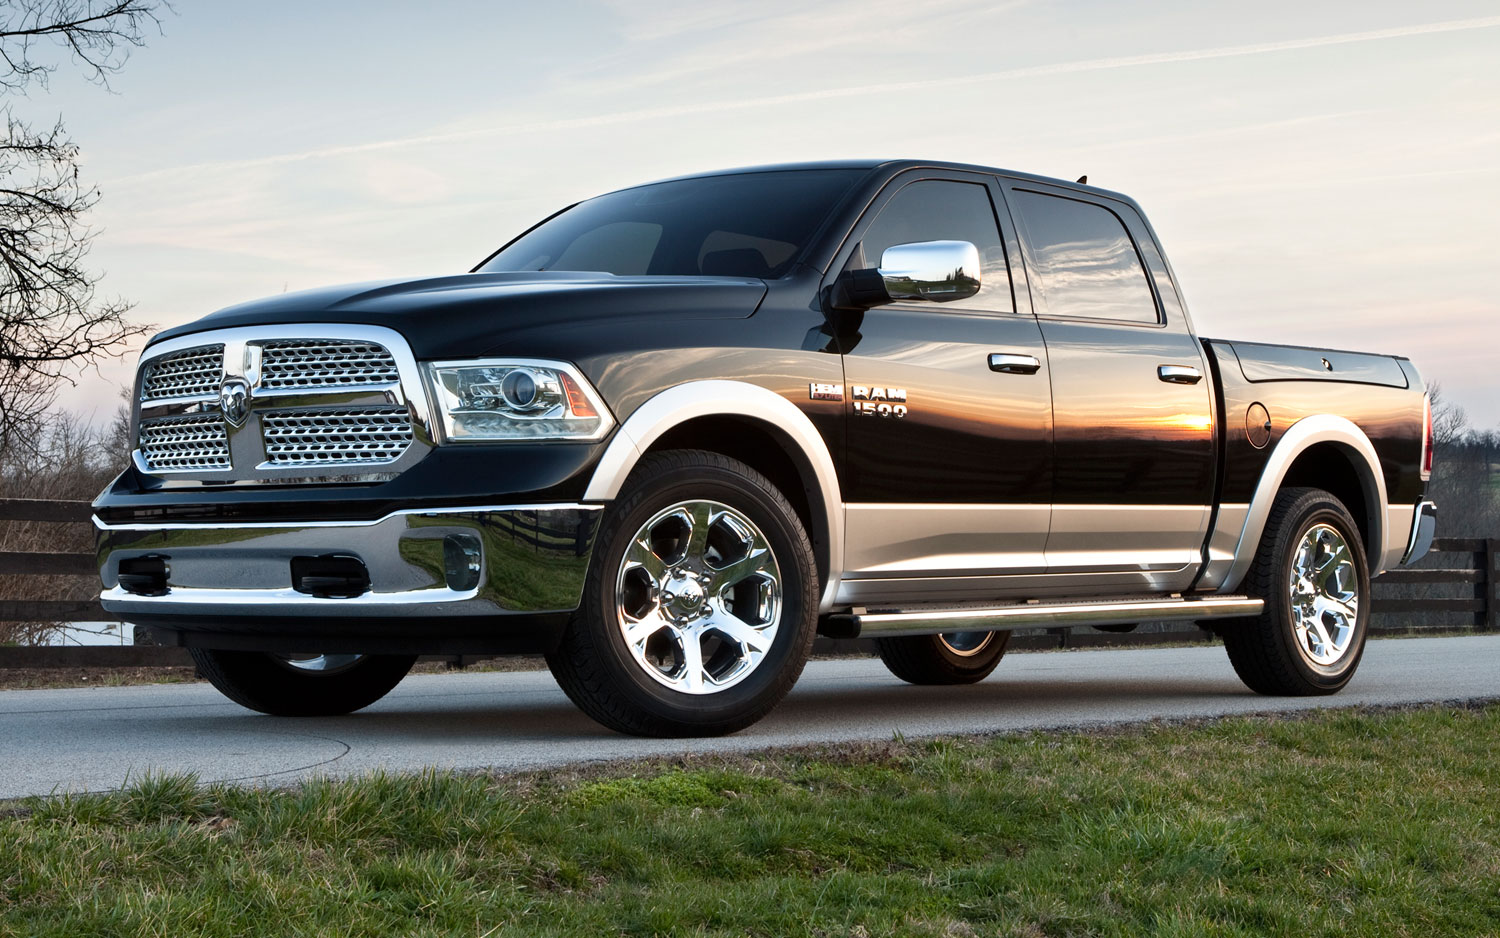 Dodge Ram Wallpapers Vehicles Hq Dodge Ram Pictures 4k Wallpapers 2019